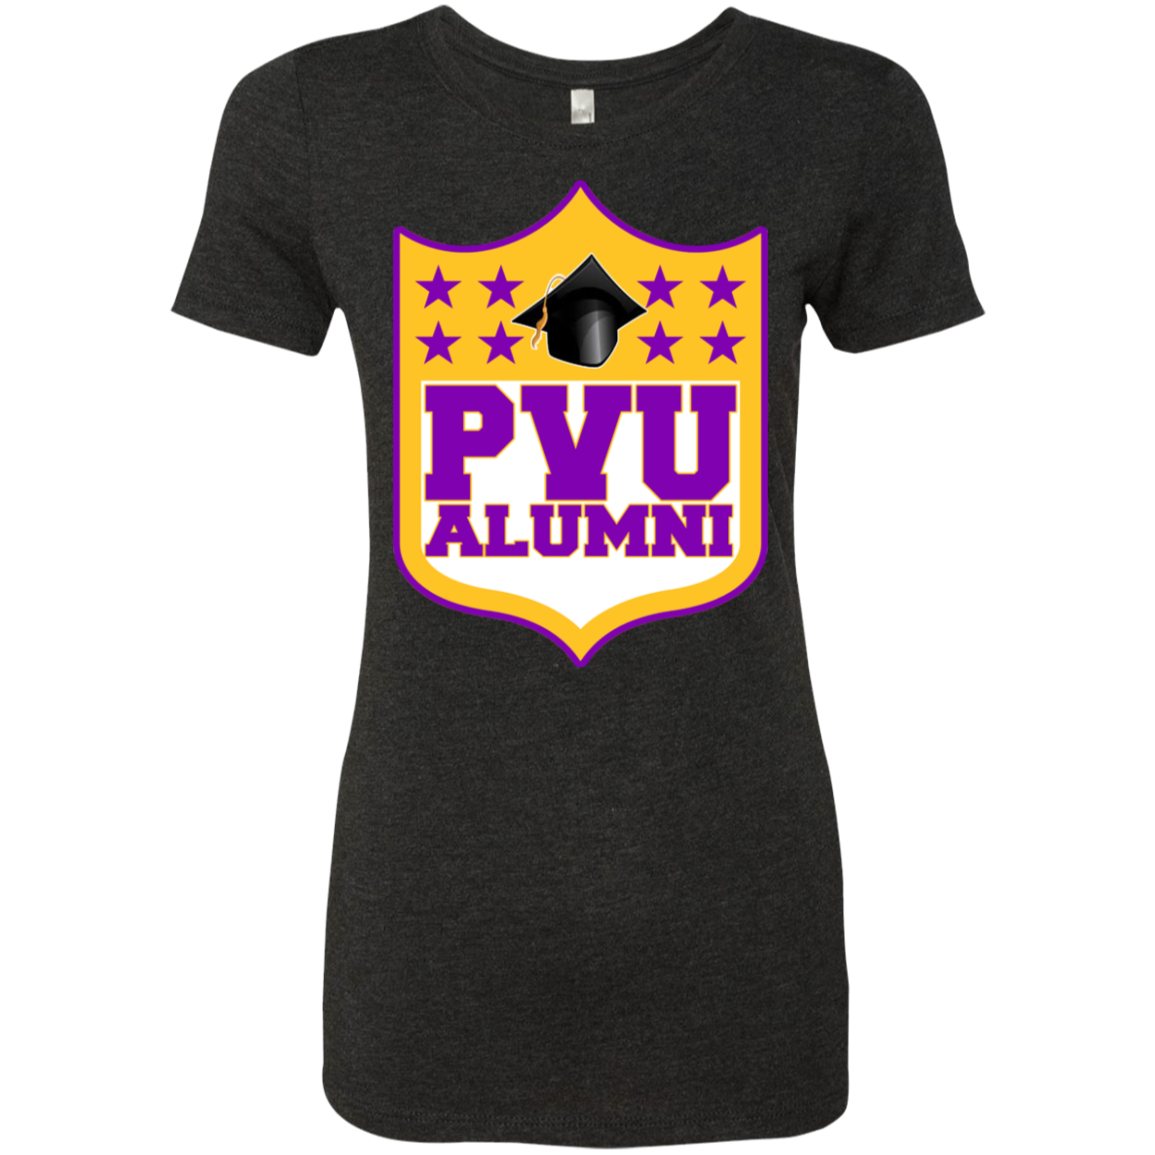 PVU Alumni Ladies' Triblend T-Shirt Very Slim Fit Petite